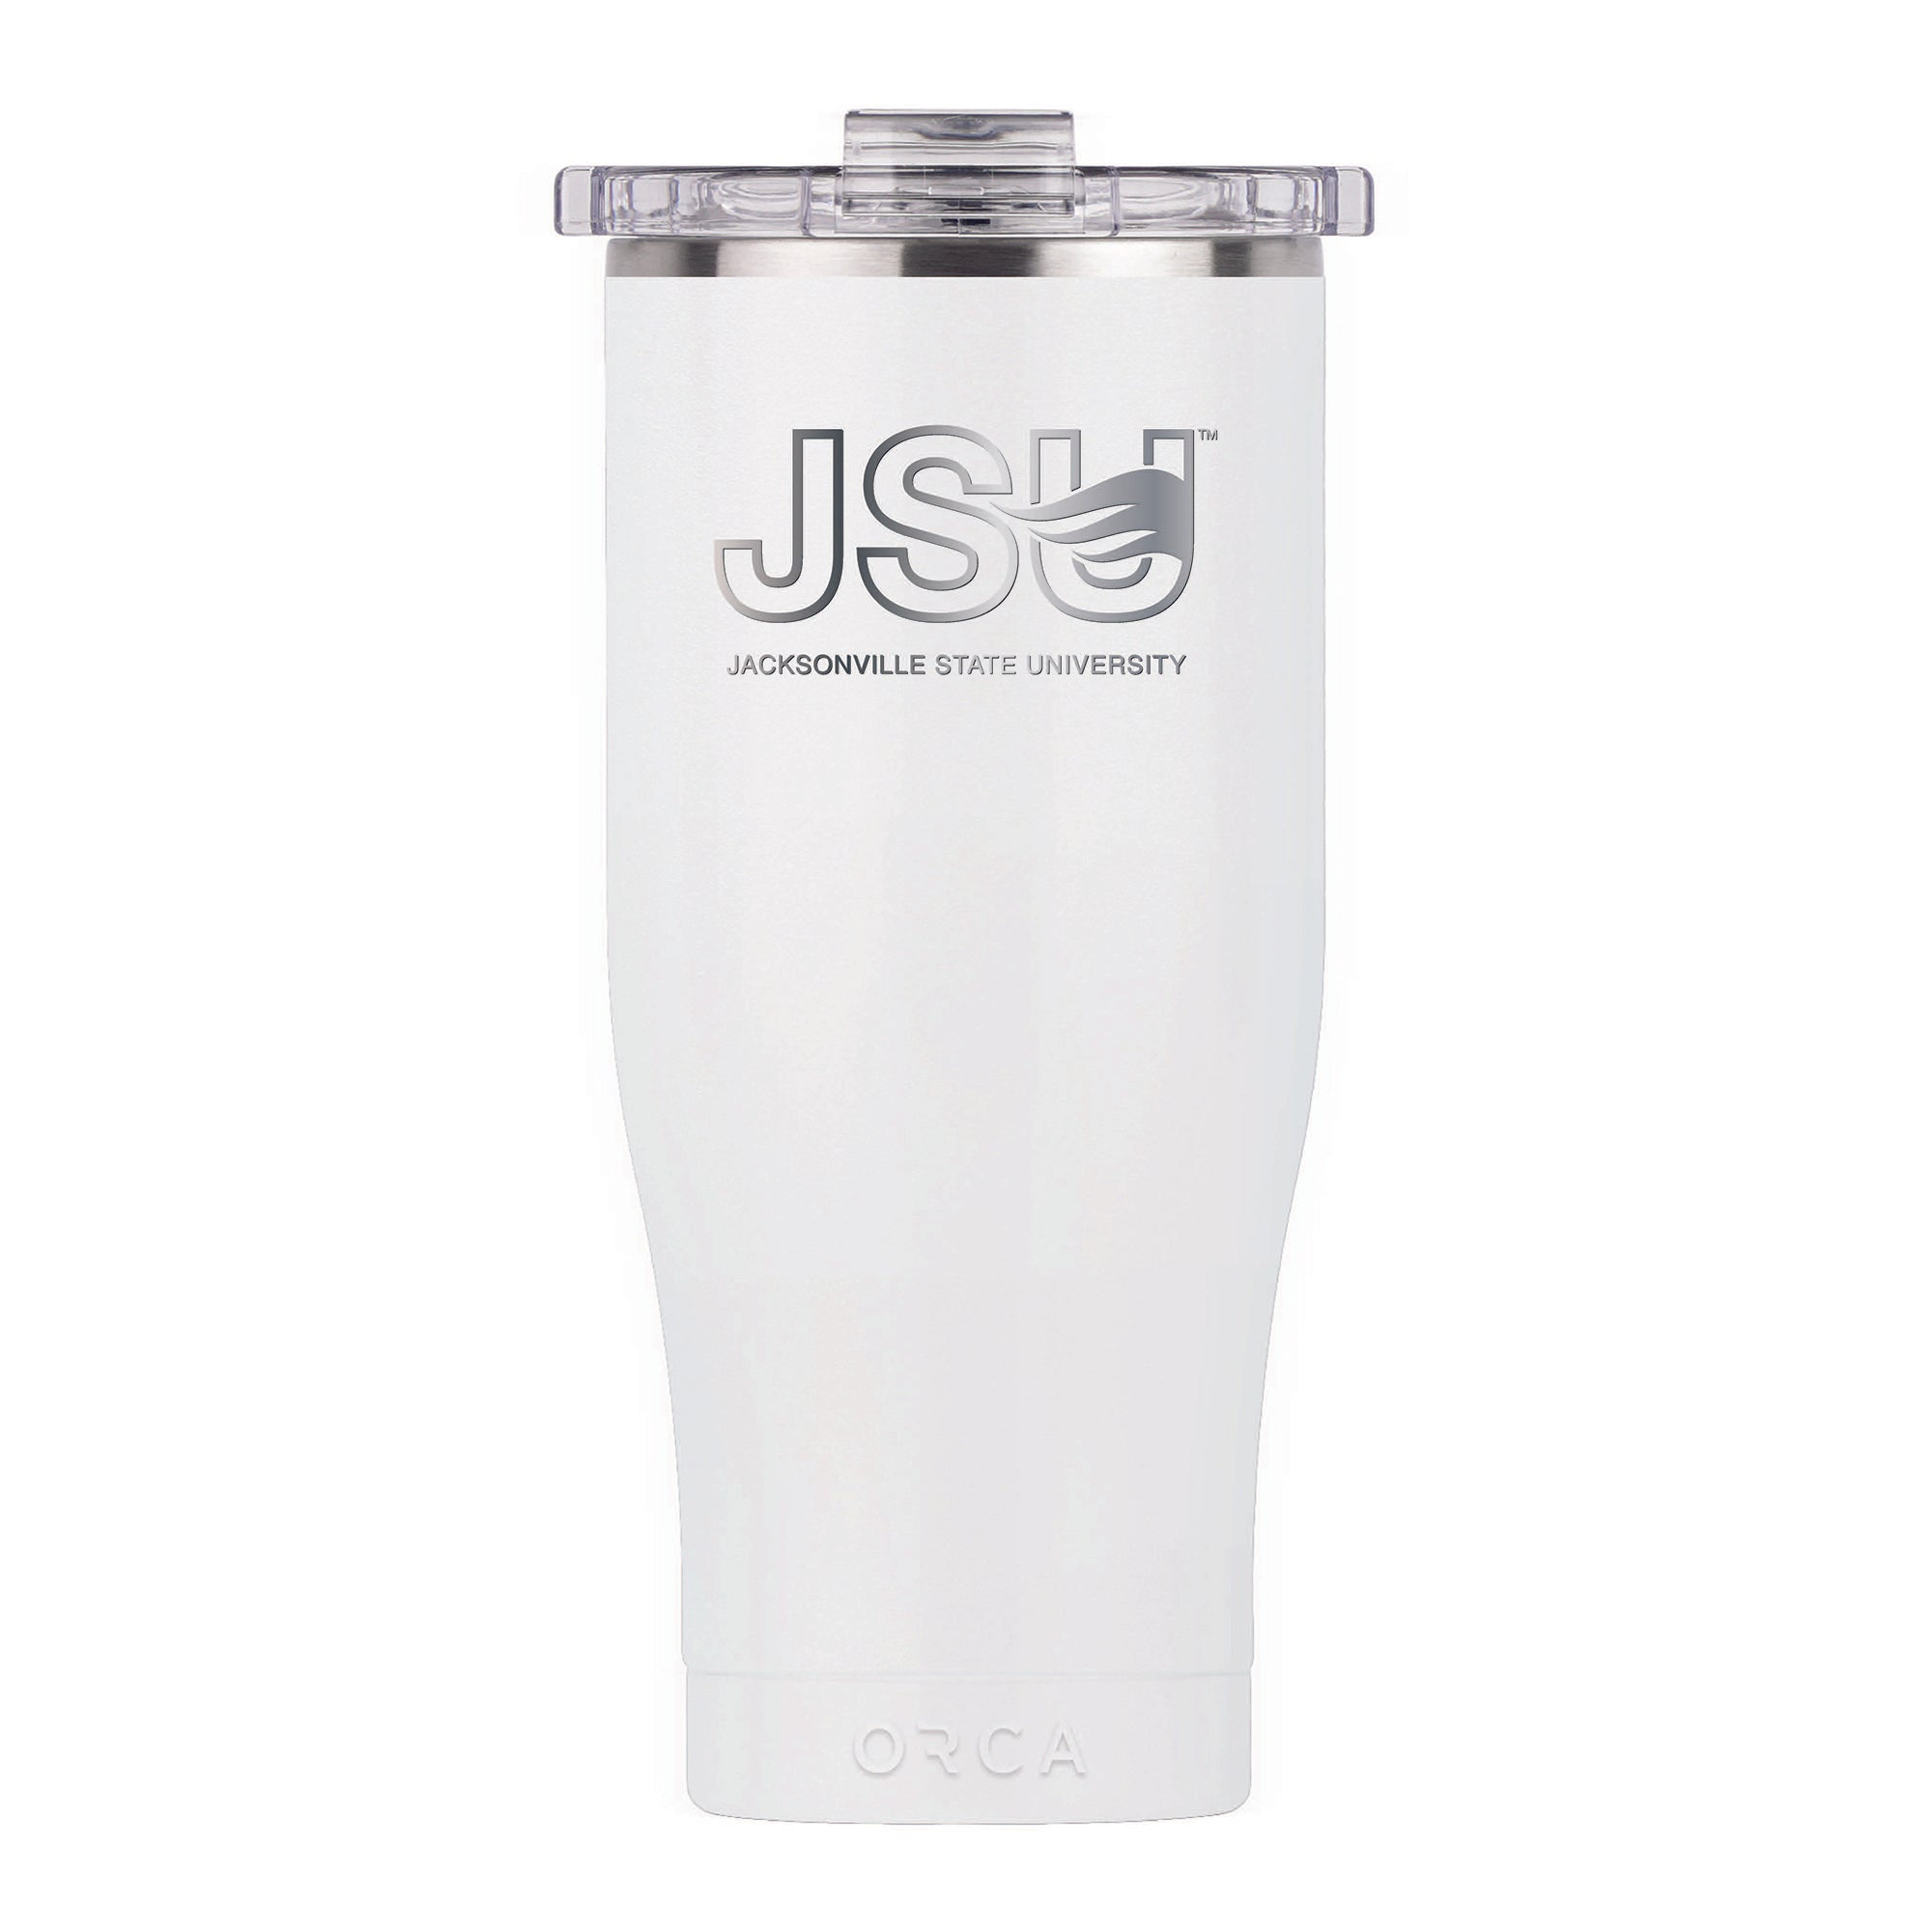 Jacksonville State Whiteout Chaser 16 oz. - ORCA